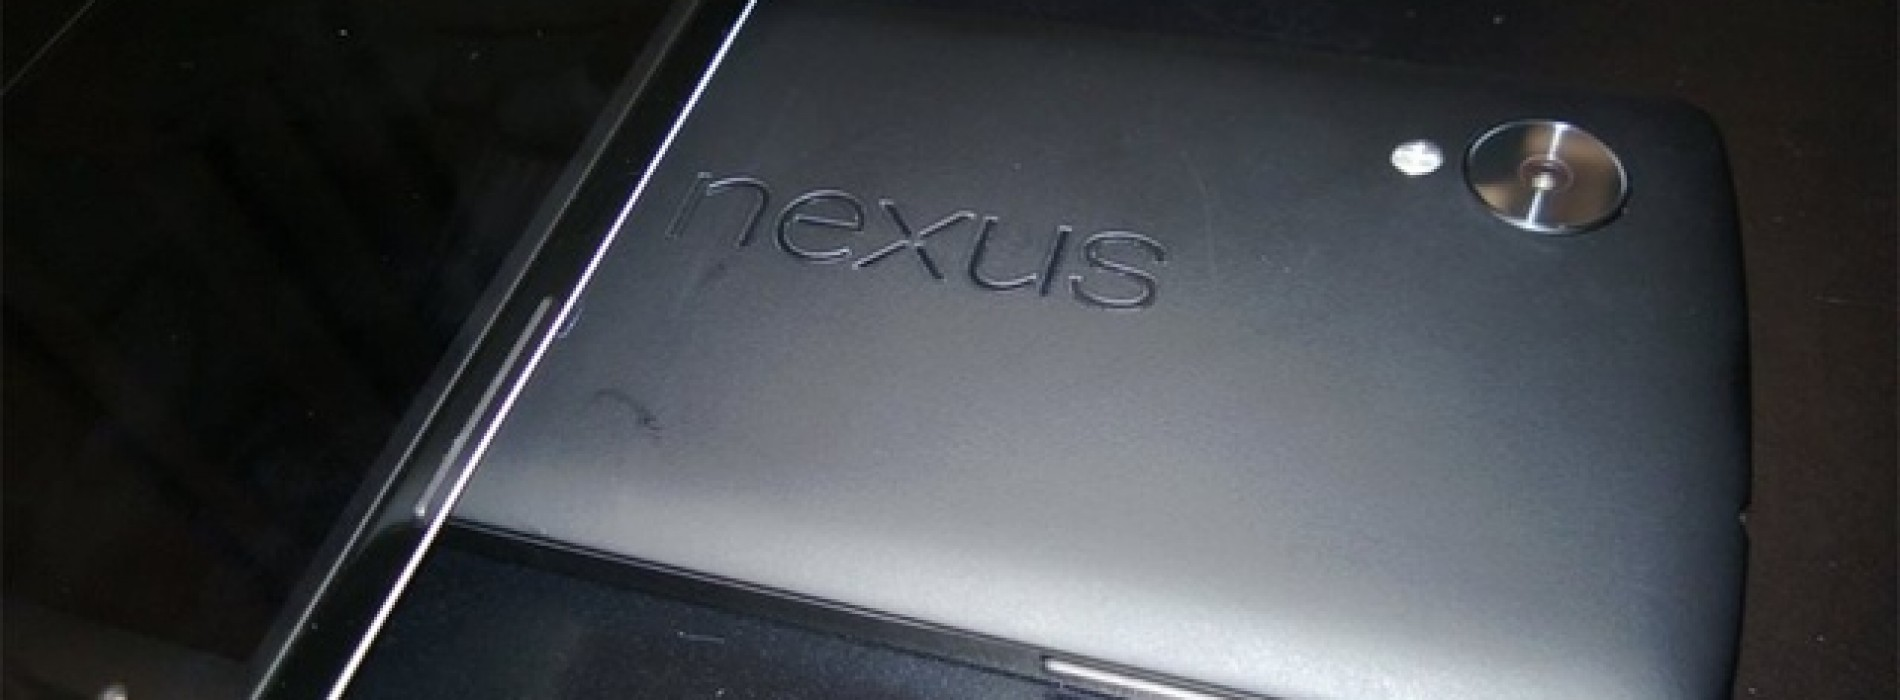 Nexus 5 spied in clearest picture yet